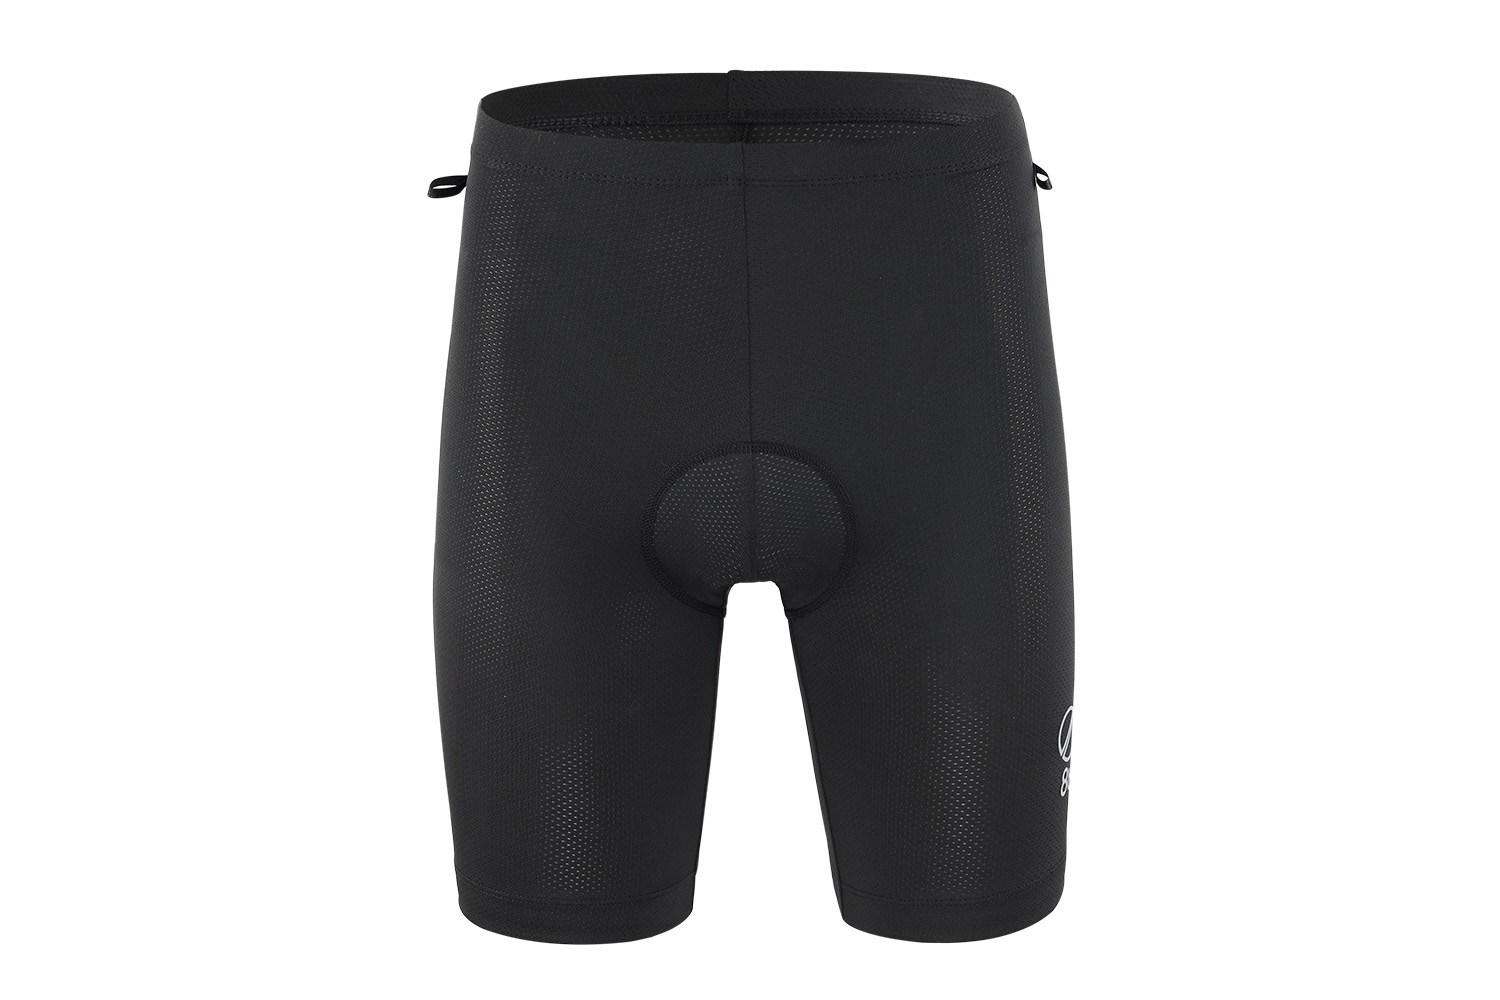 8bar-gravel-cycling-underwear-fahrrad-unterhose-men-black-001